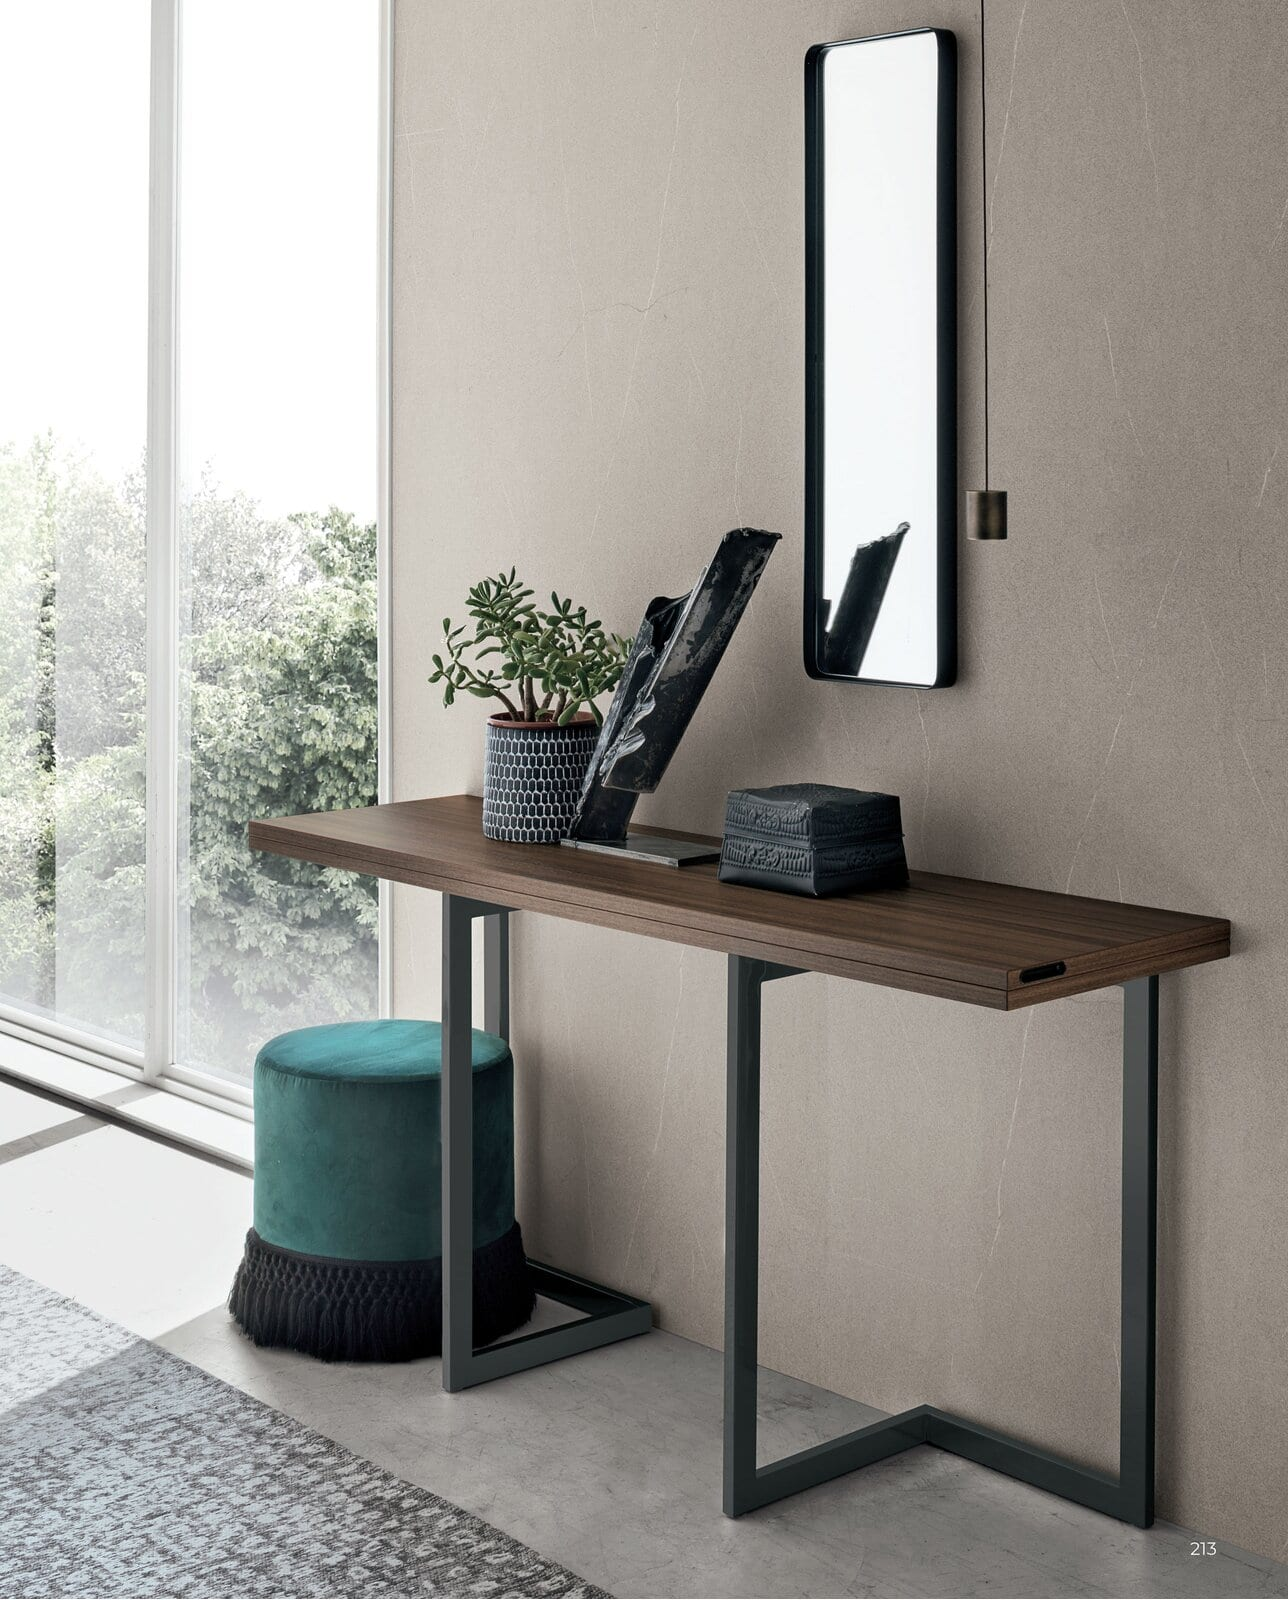 Maximise Use With a Multi-Purpose Convertible Console Table